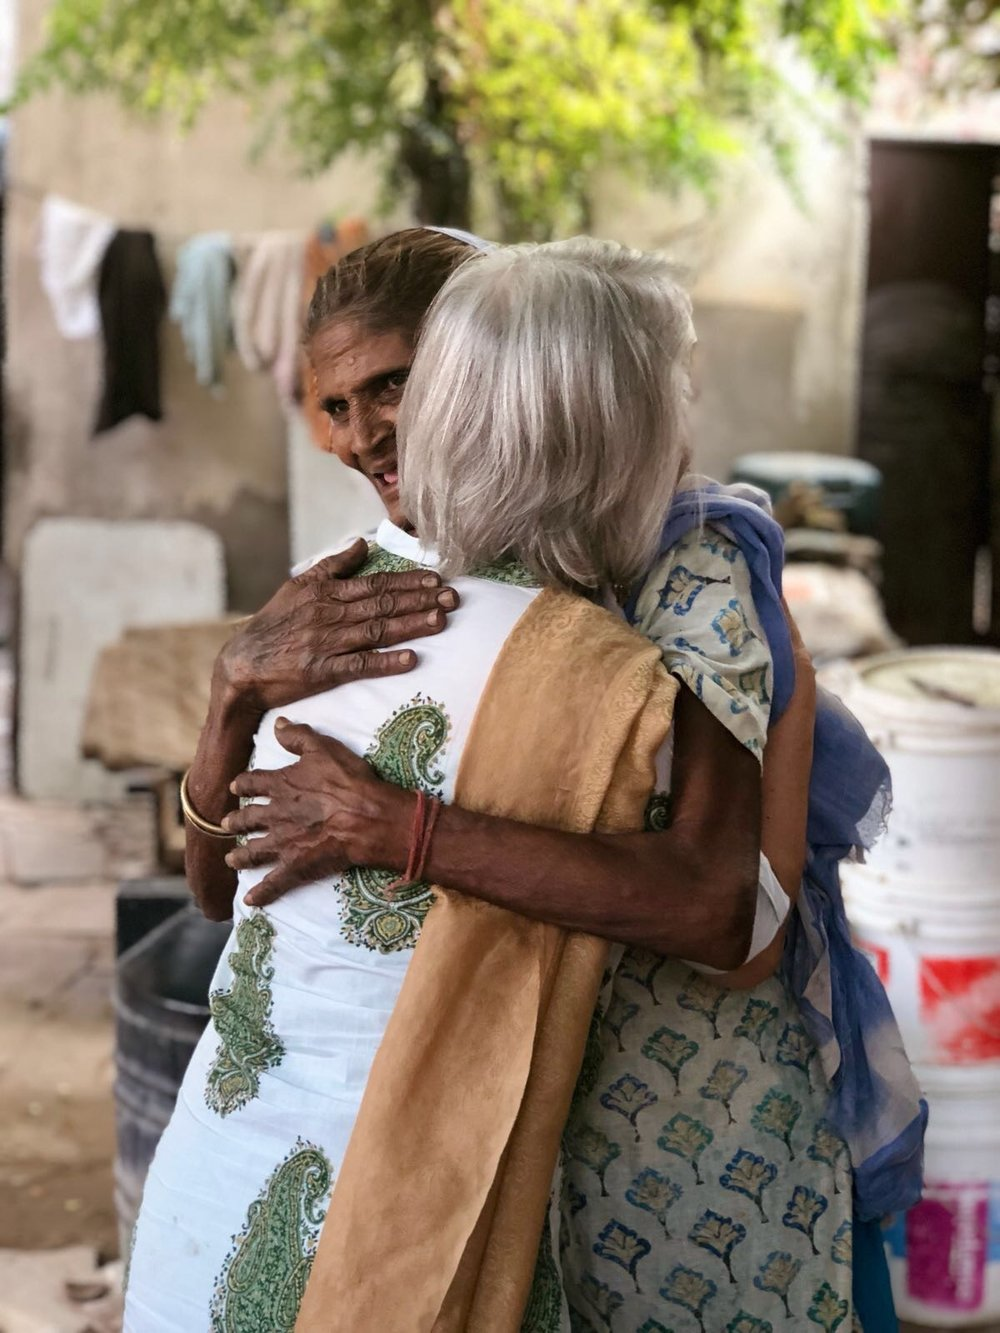 It was a sweet reunion between Rosemary Sherrod and this experienced Indian village midwife, affectionately called 'Danto' (toothless). For over a year now, Rosemary has been compiling Danto's stories in preparation for a documentary about her lifelong work in childbirth. Team members Leah and Stephanie also had the privilege to meet her and learn of her wonderful work!